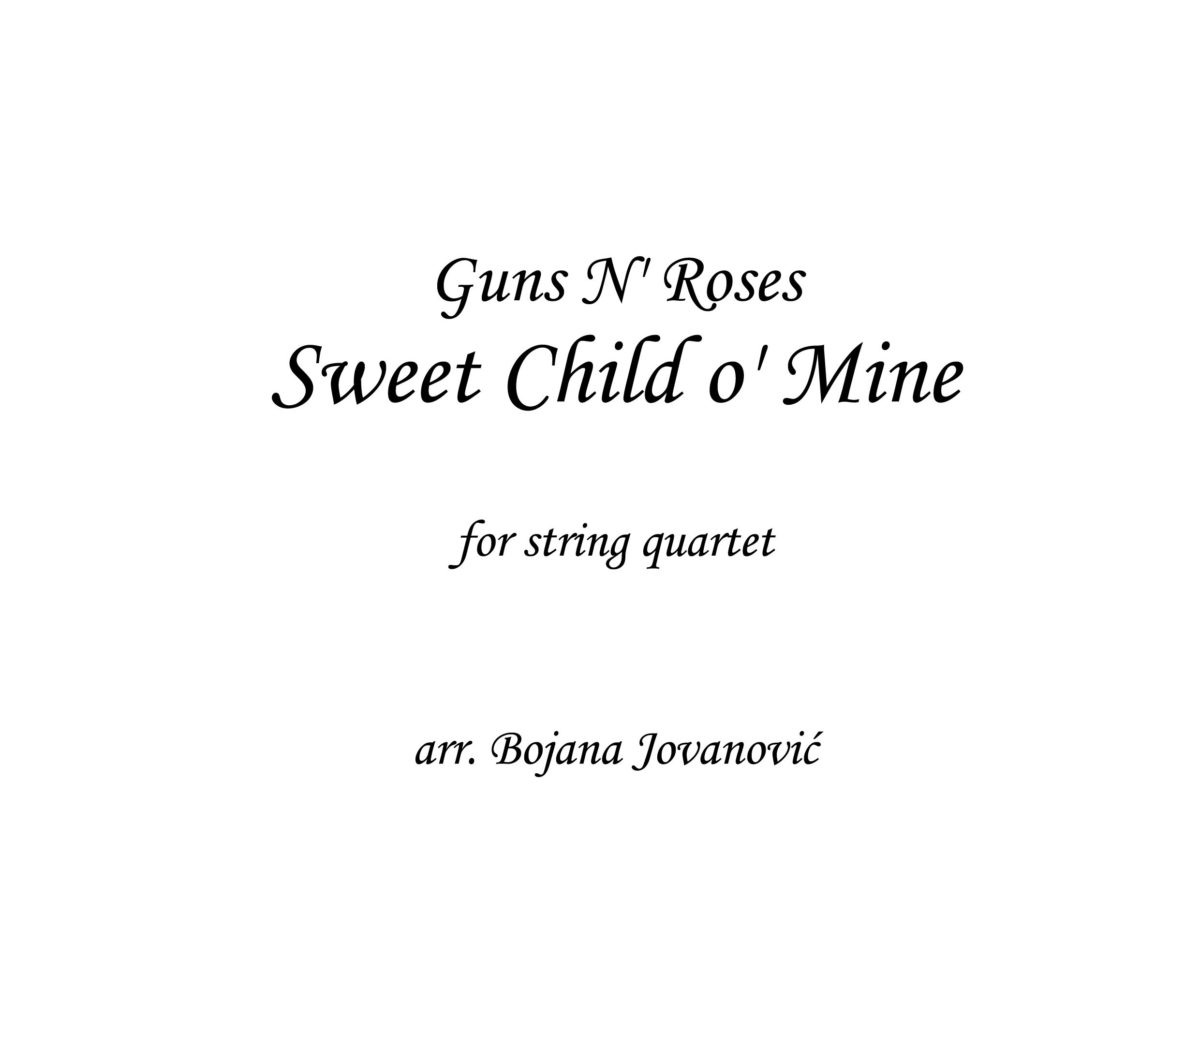 Sweet Child o' Mine (Guns N' Roses) - Sheet Music